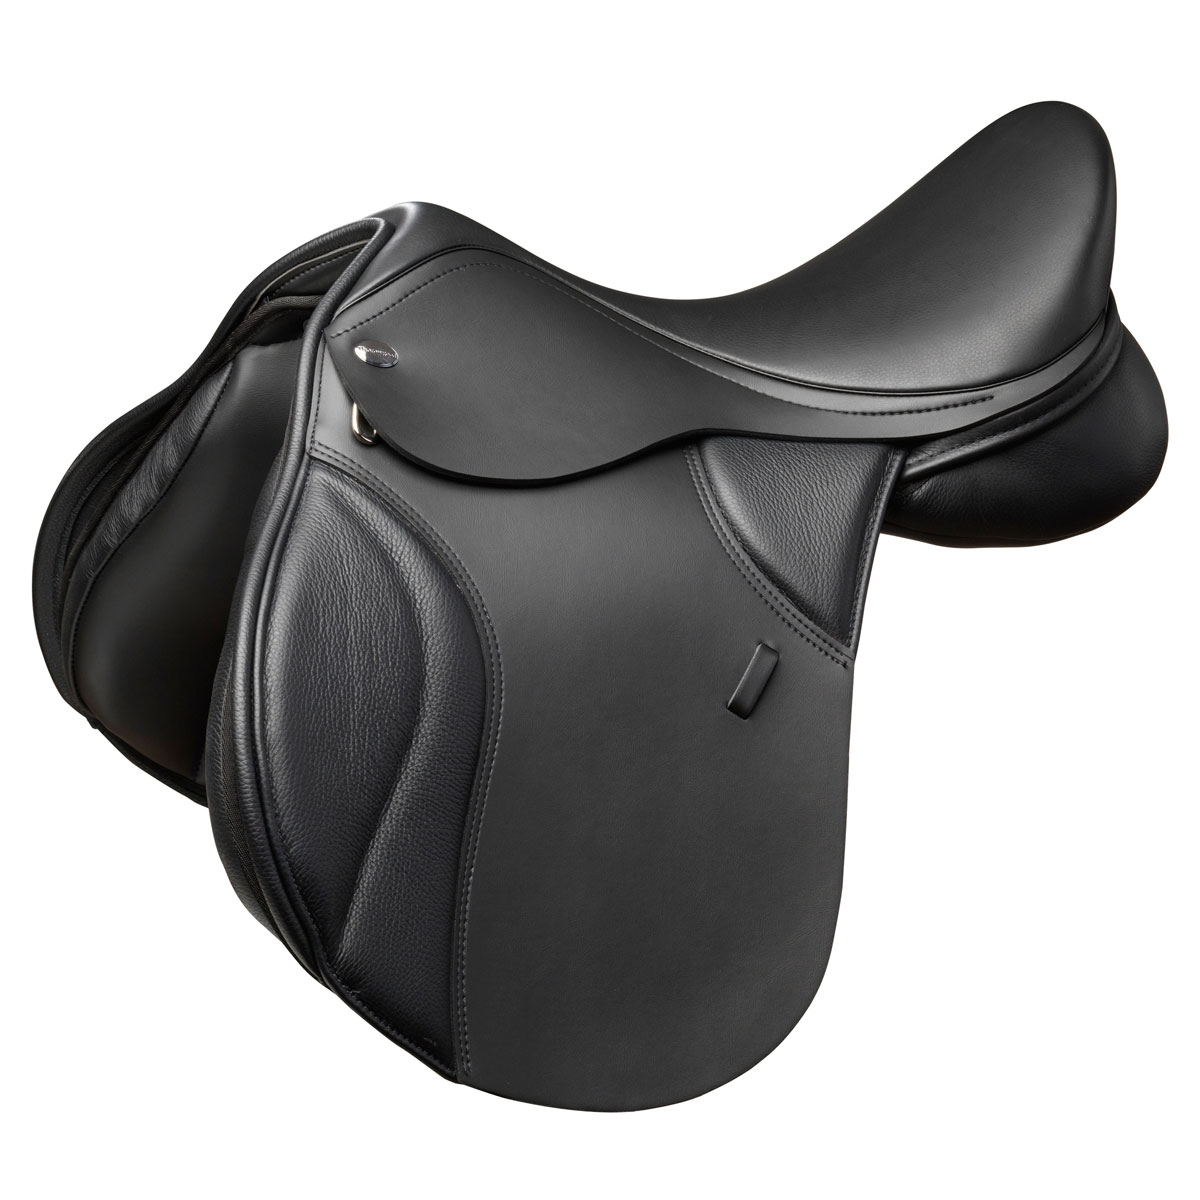 Thorowgood T8 High Wither Compact GP Saddle